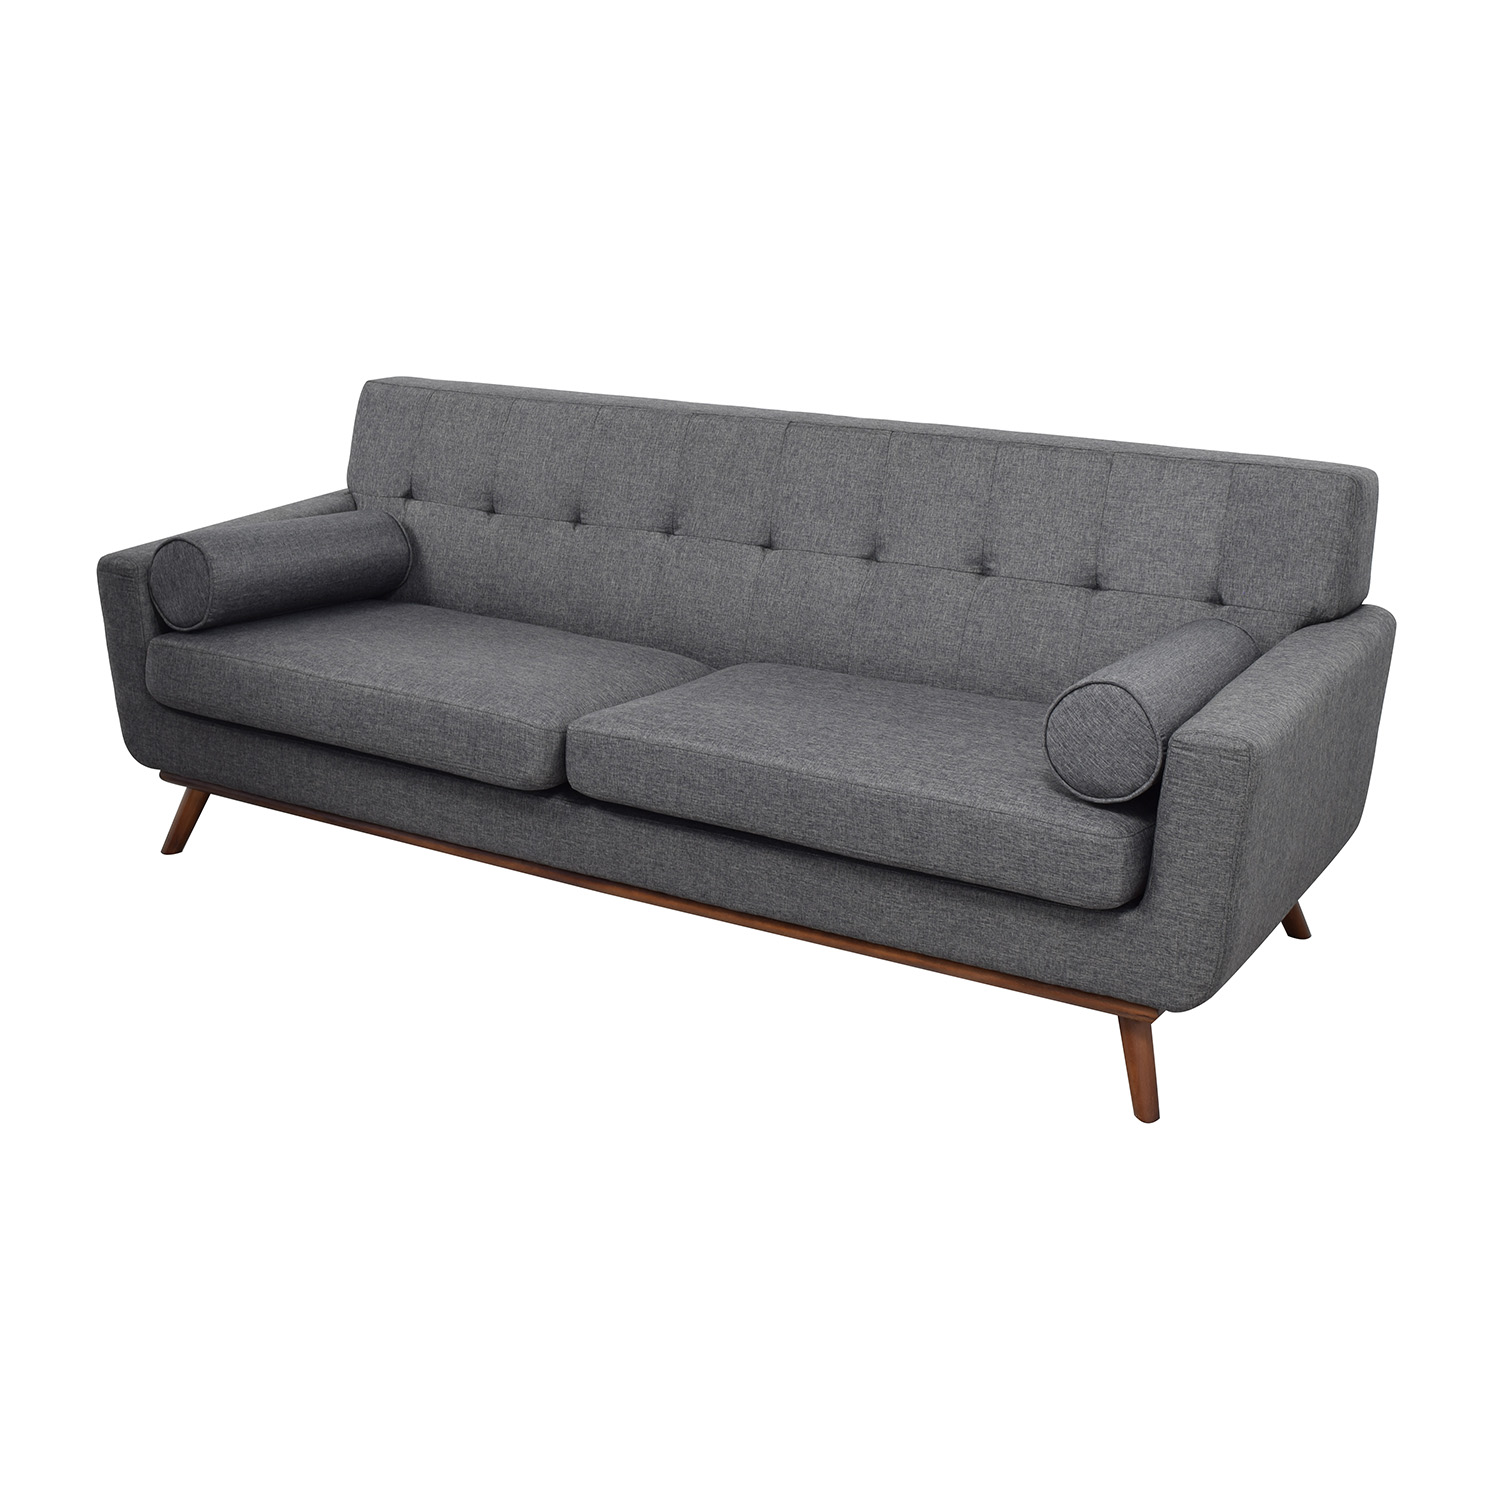 30 off inmod inmod charcoal grey tufted lars sofa with for In mod furniture